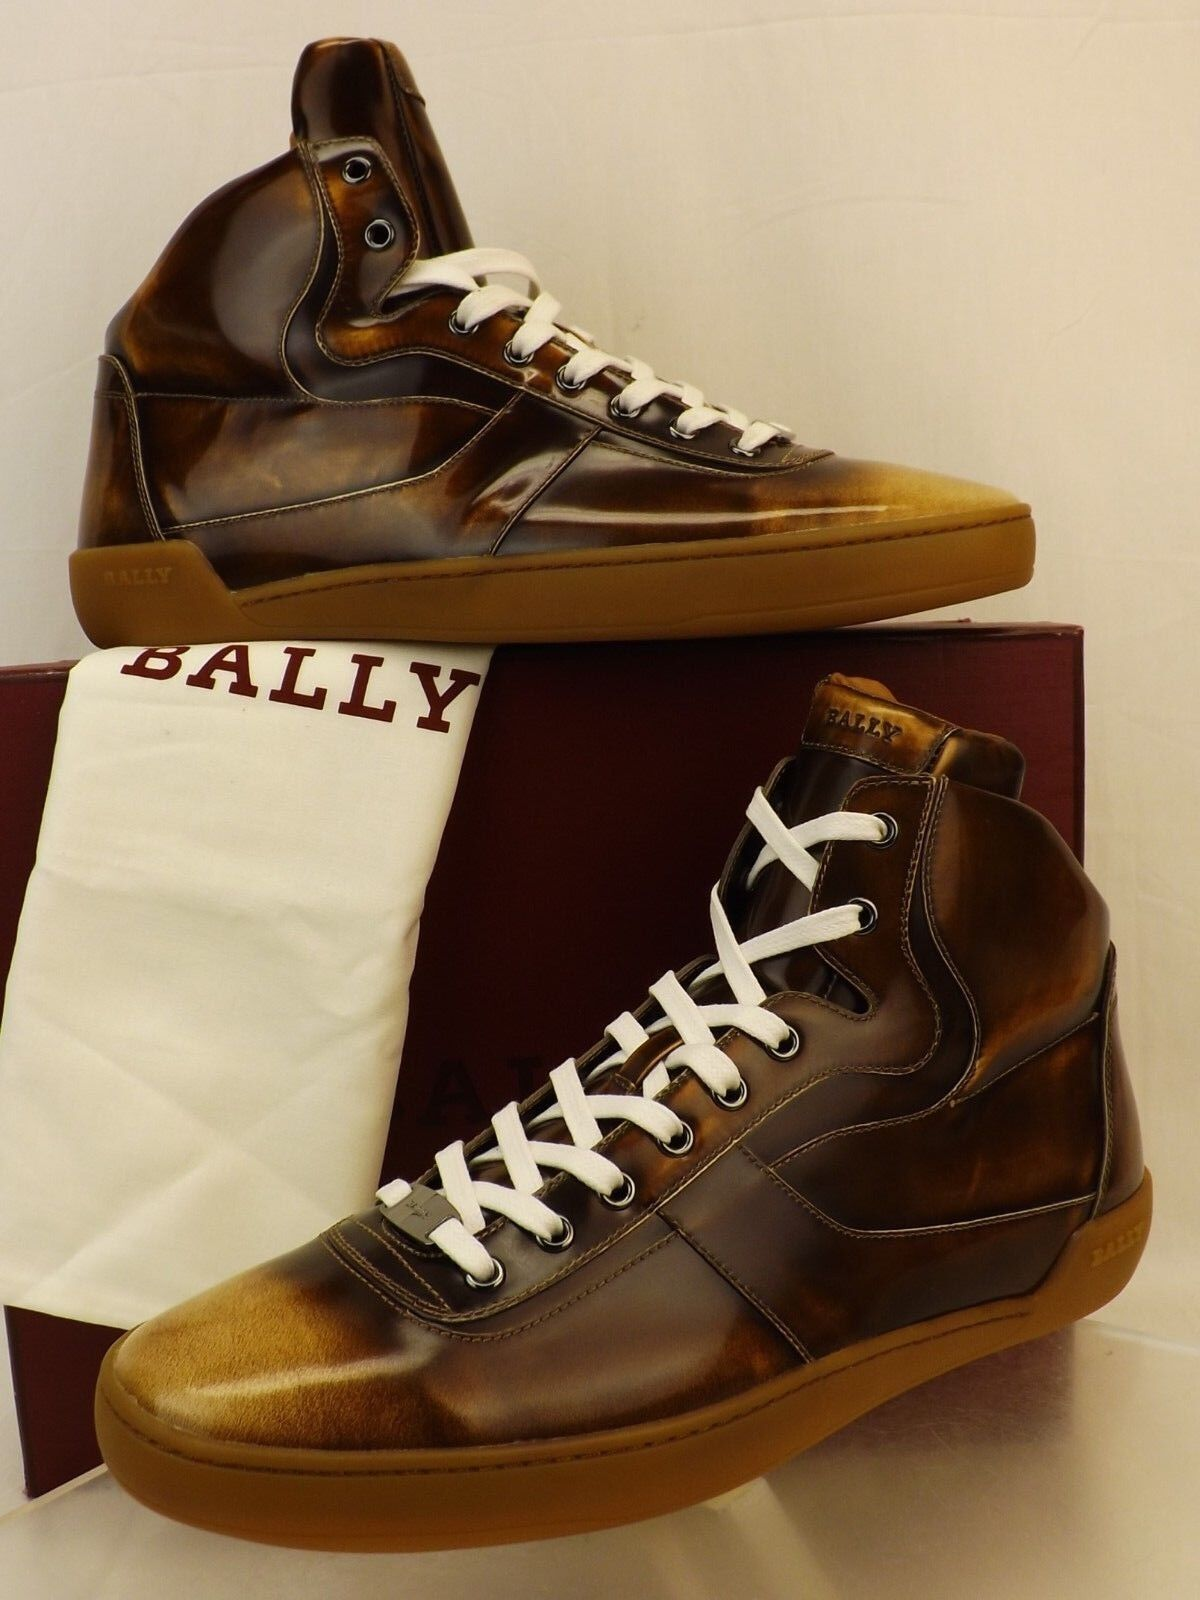 NIB BALLY EROY CUIR BRUSHED LEATHER LOGO HI TOP LACE UP SNEAKERS 10 D US 43